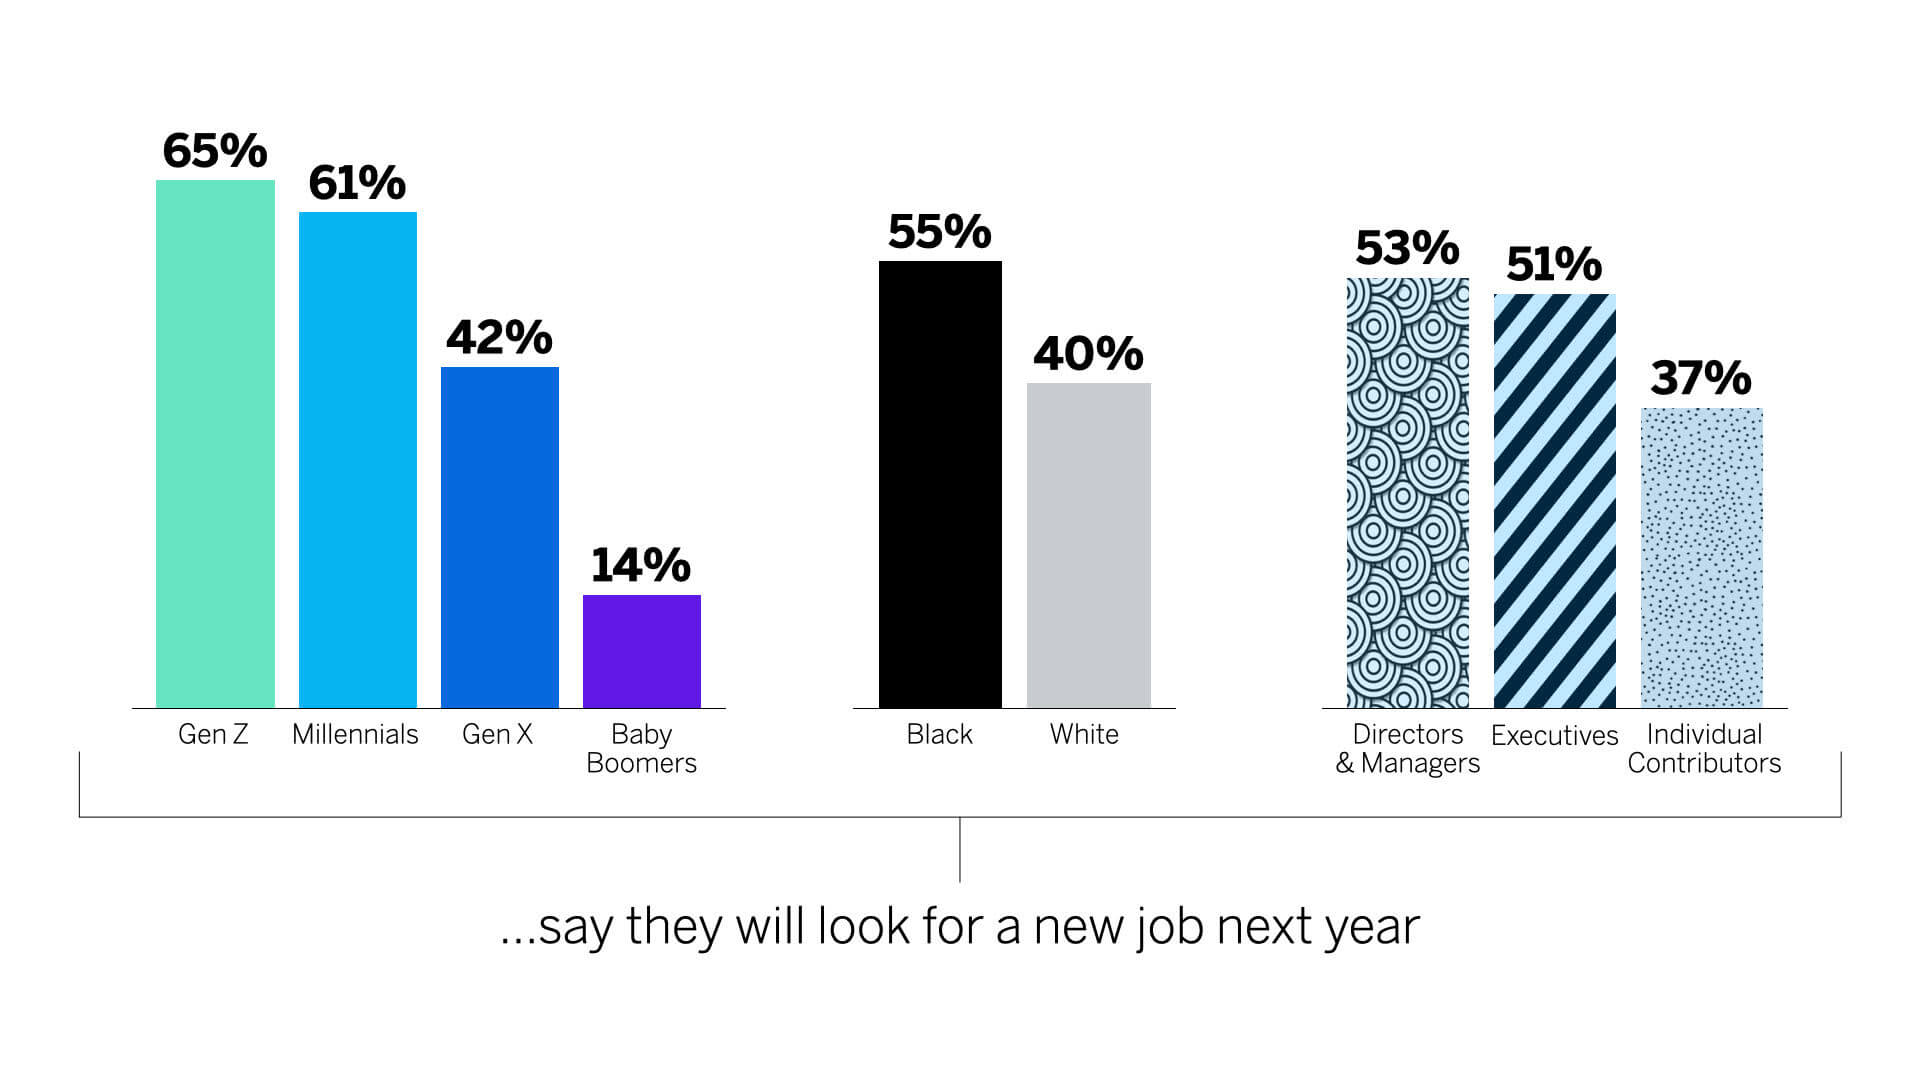 Percent of different people looking for new job in the next year